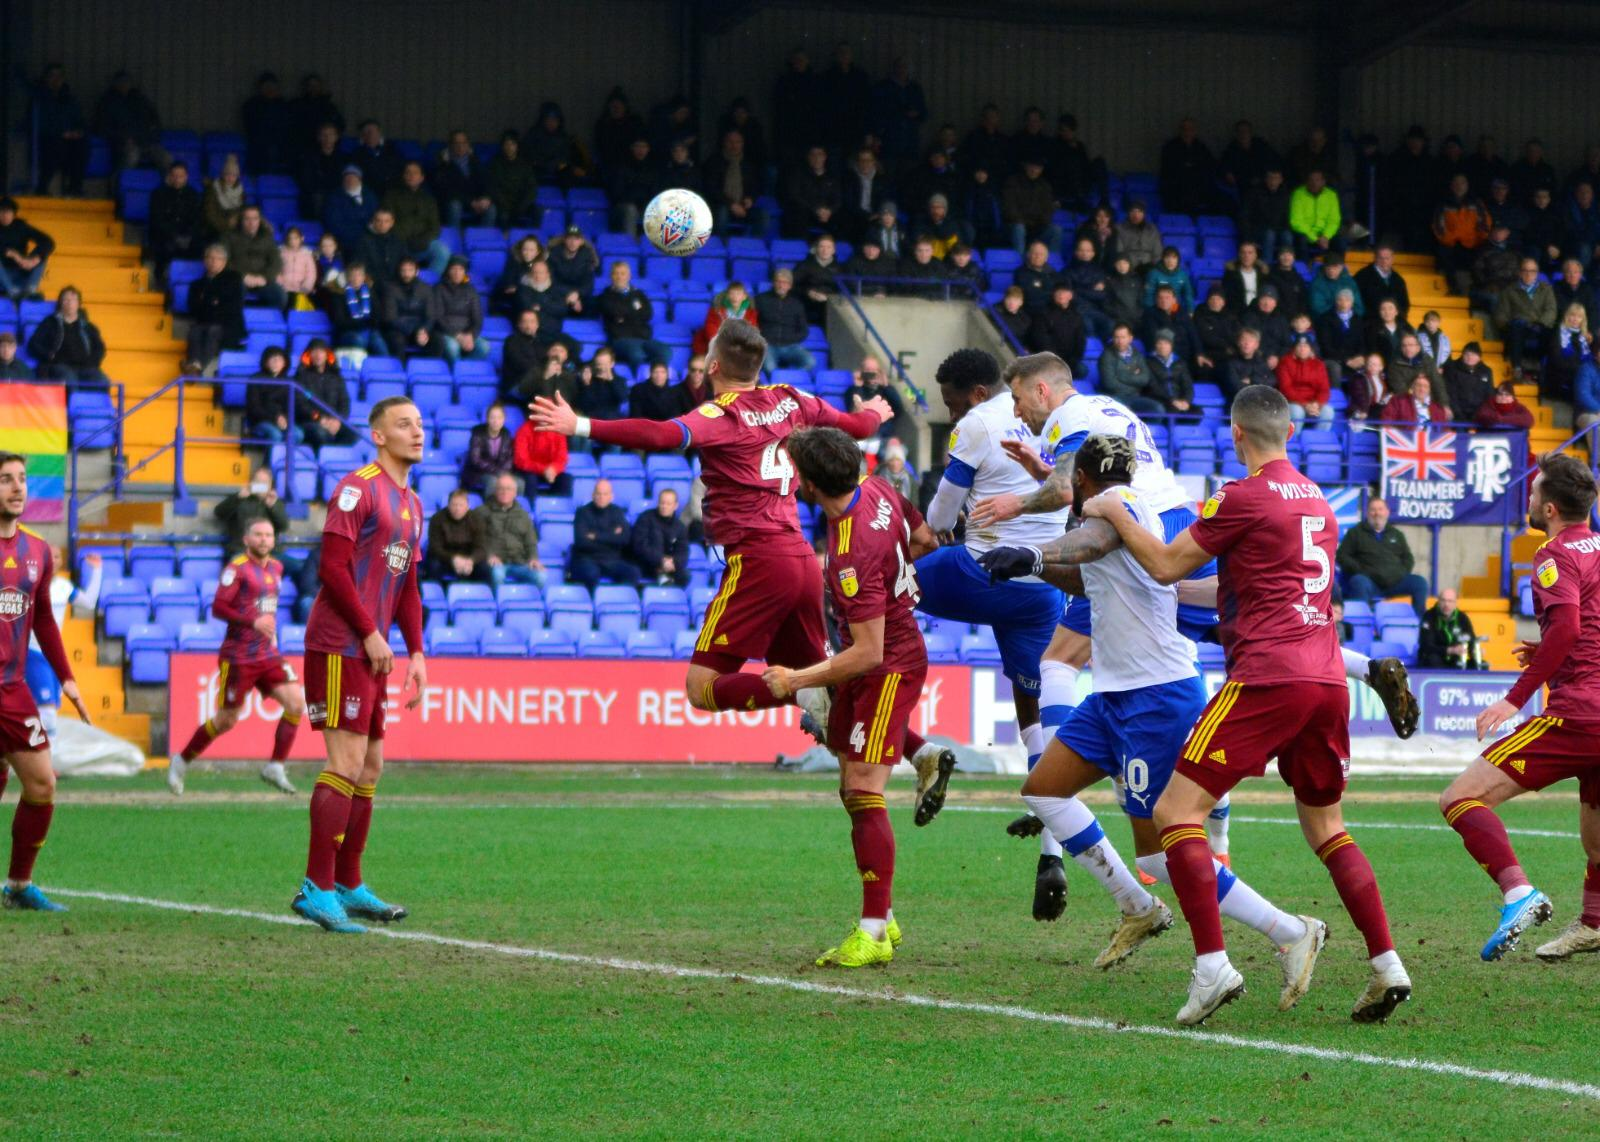 Tranmere Rovers 1-2 Ipswich Town - Match report